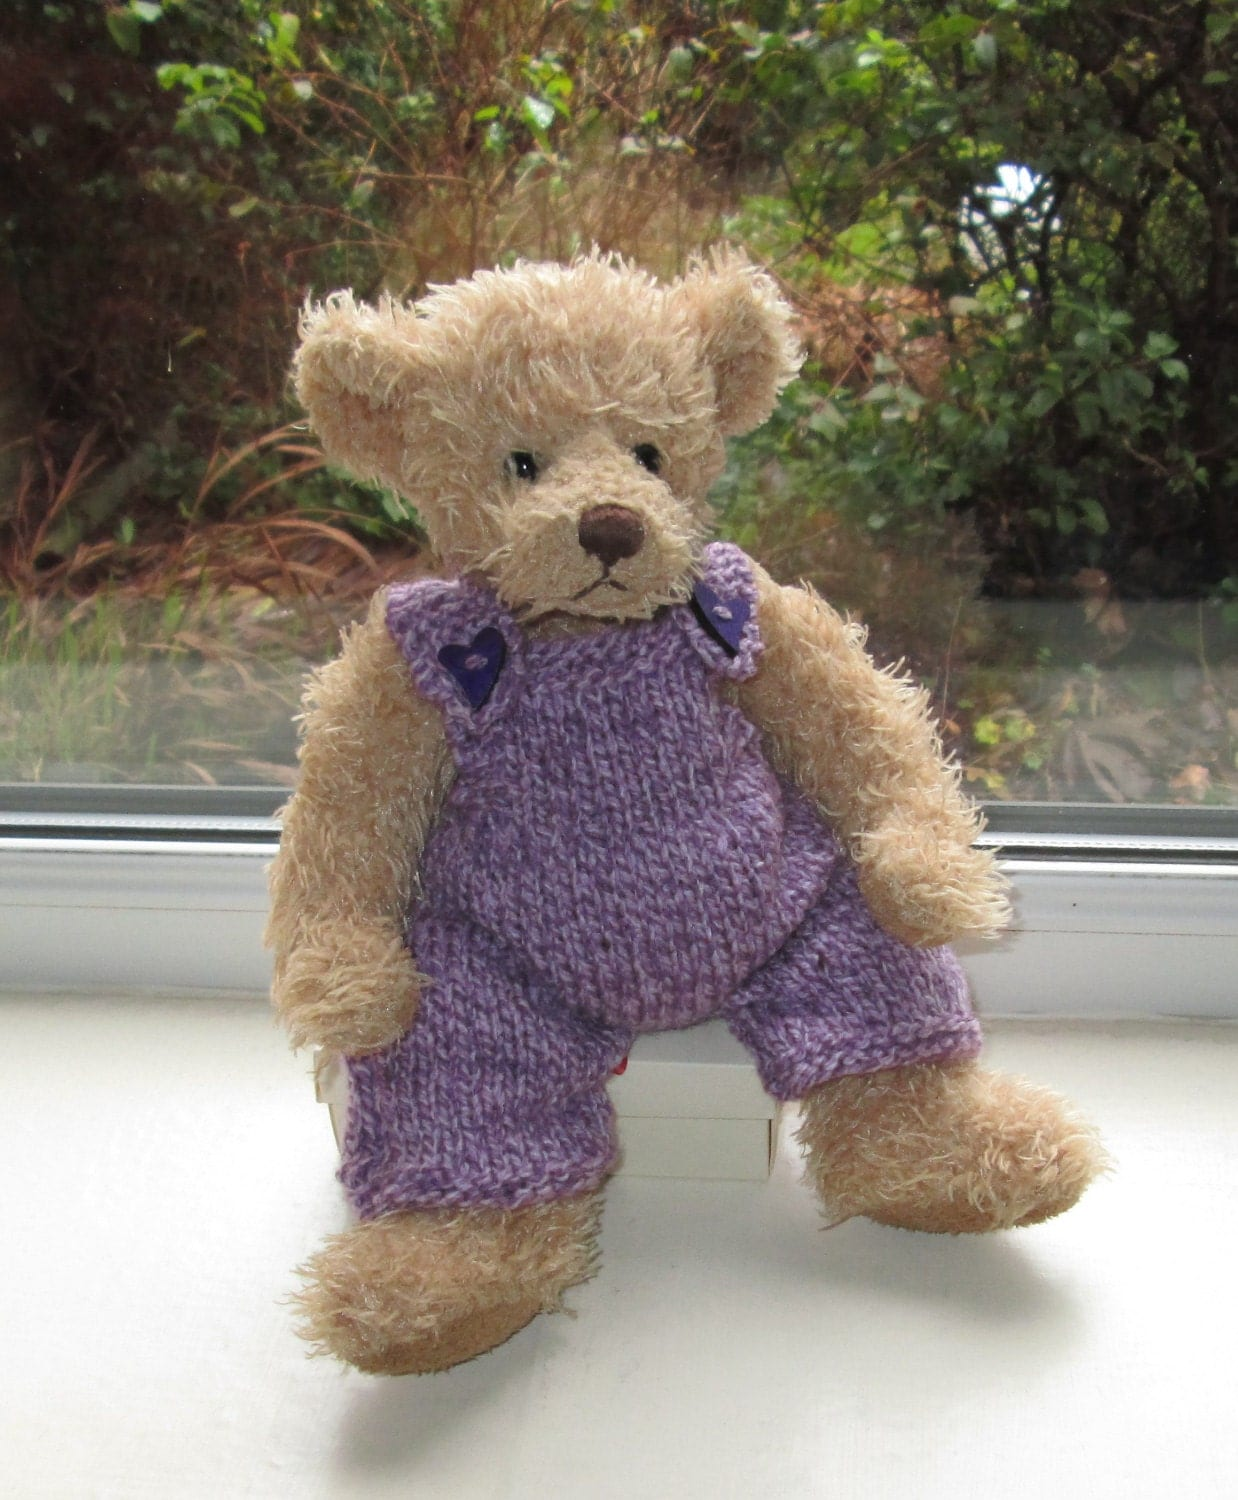 Teddy Bear Clothes Hand Knitted  Lilac Tweed Wooden Heart Dungarees to fit a 11 inch bear Dolls Clothes Toy Clothes Ready To ShipPost